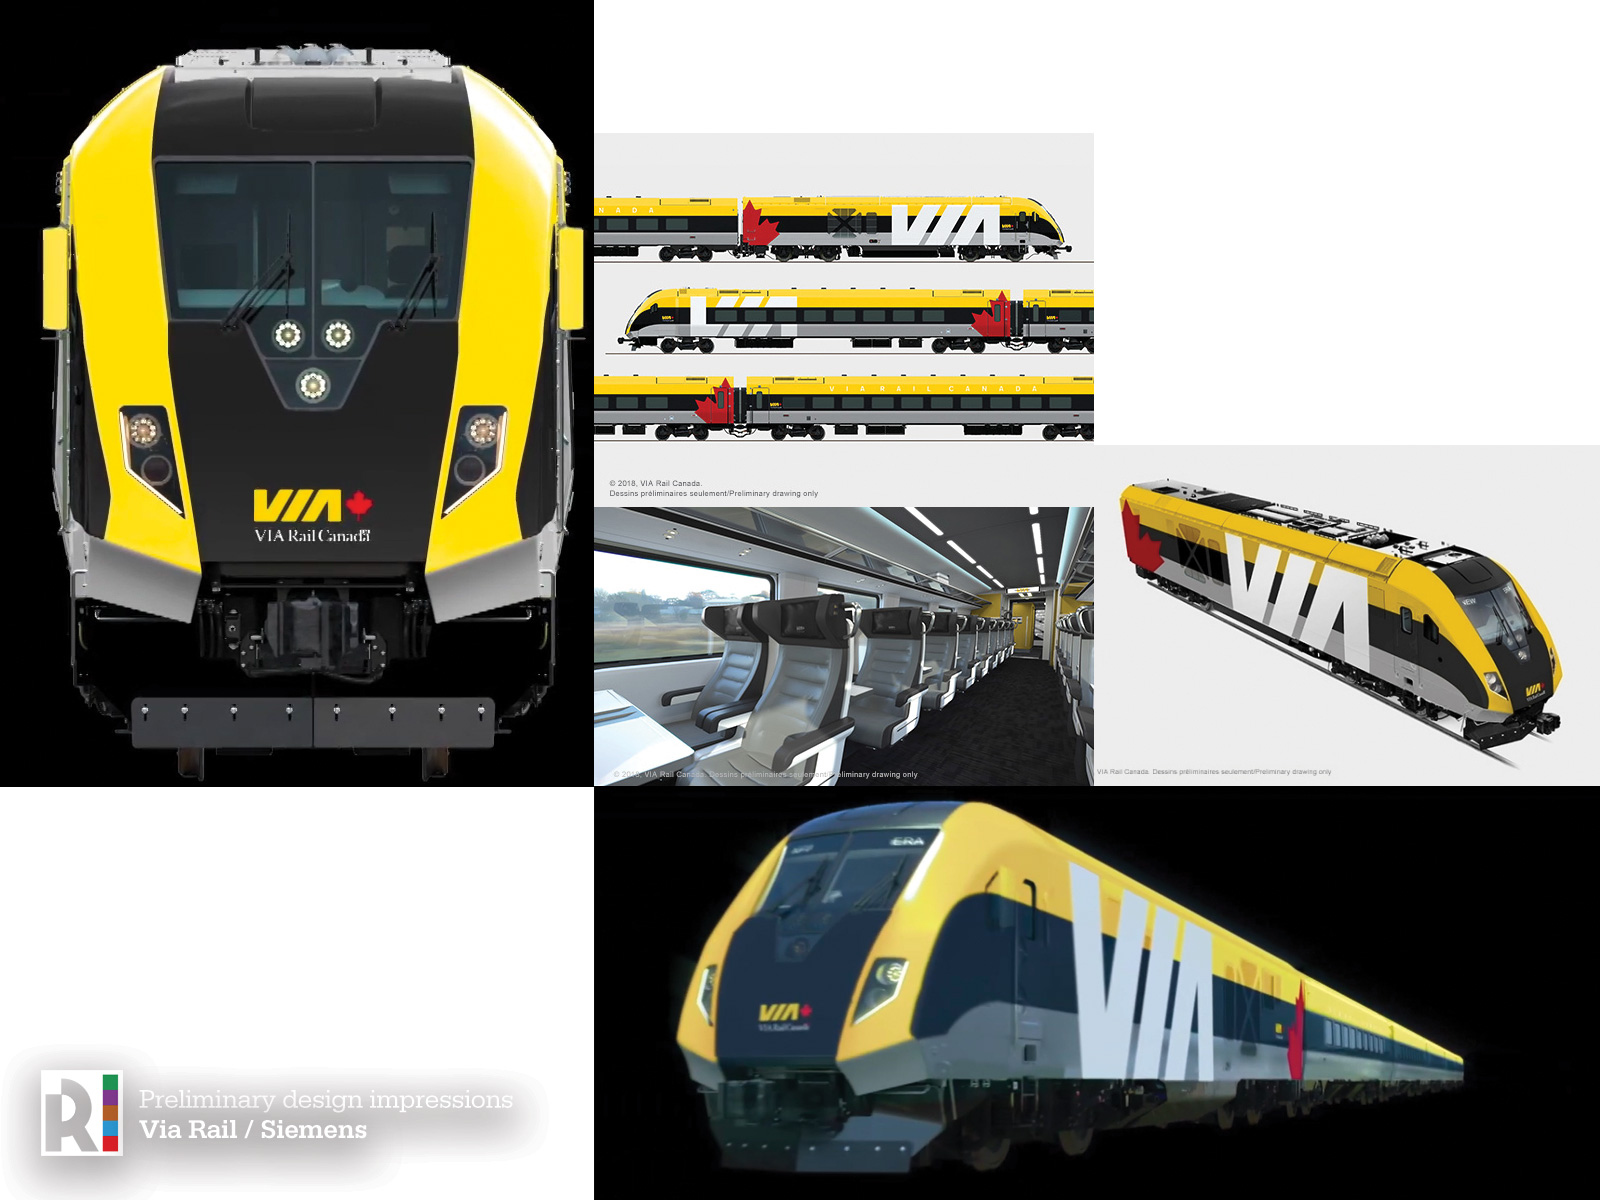 siemens_charger_viarail01collage.jpg?w=1